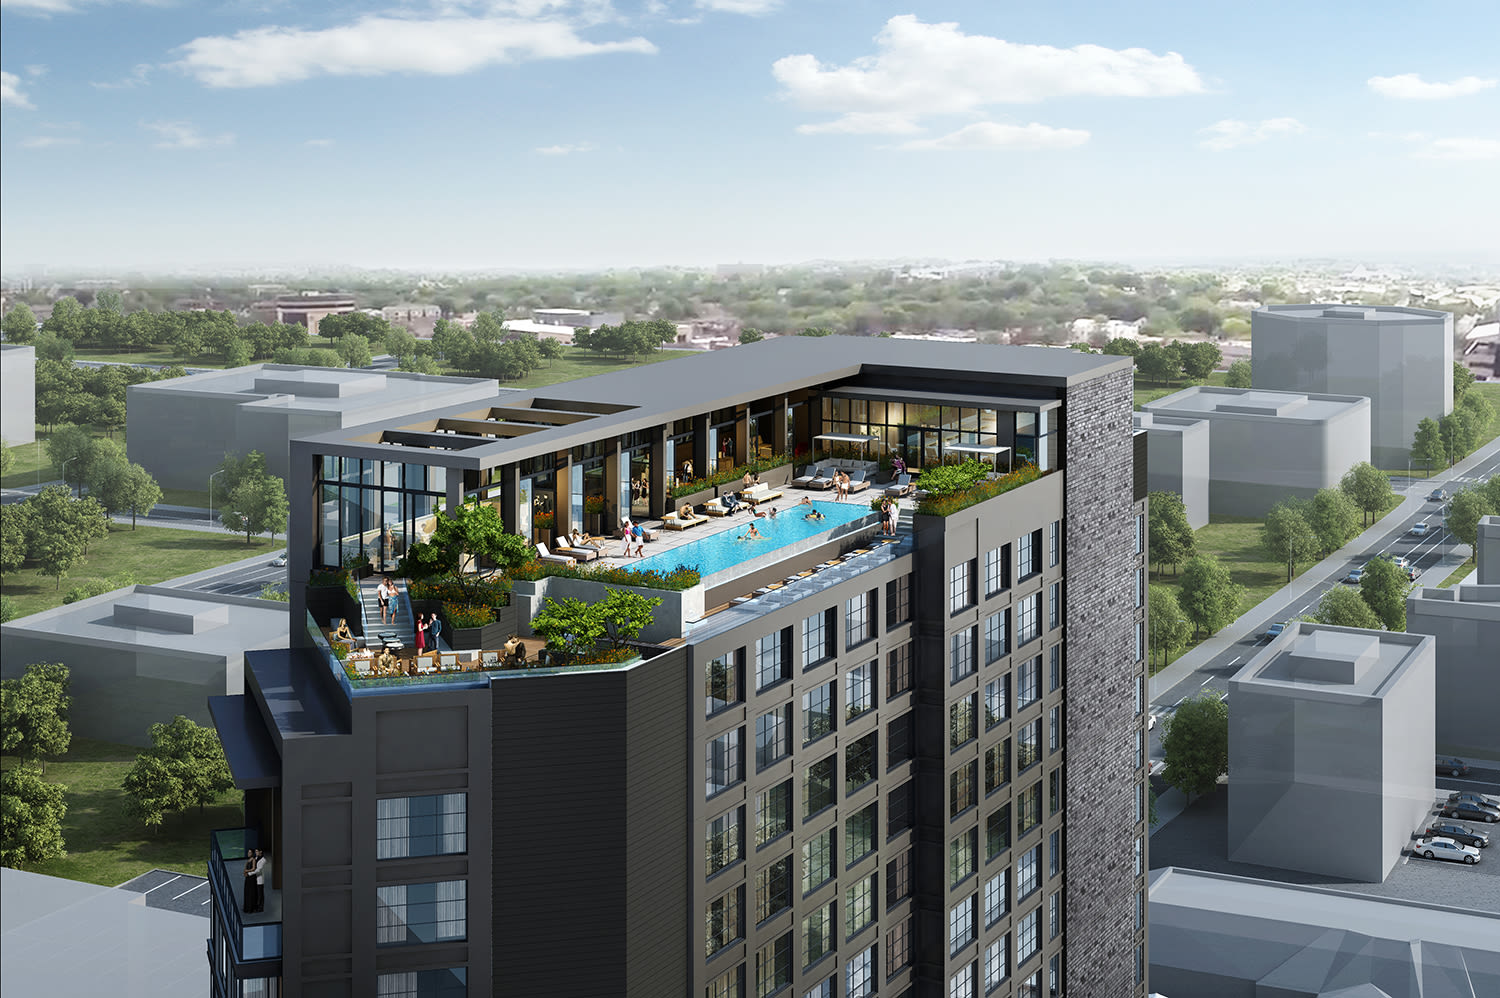 Render of the rooftop pool at Virgin Hotels Nashville